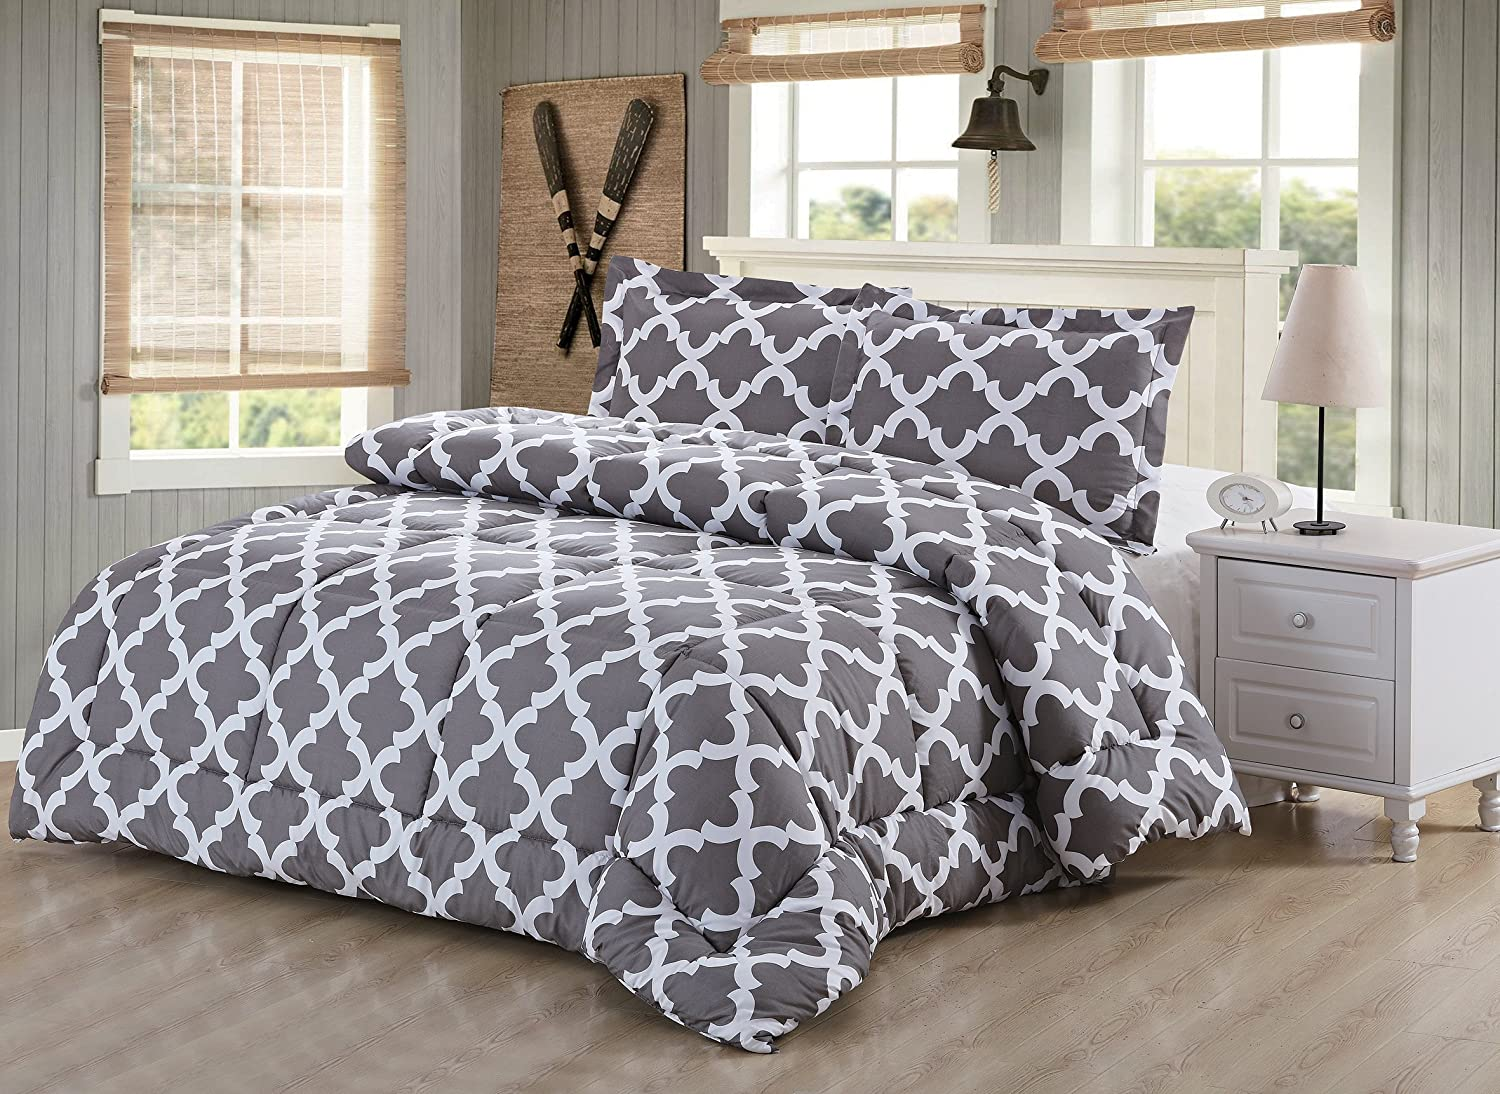 Luxurious Soft Brushed Microfiber - Goose Down Alternative Comforter by Utopia Bedding